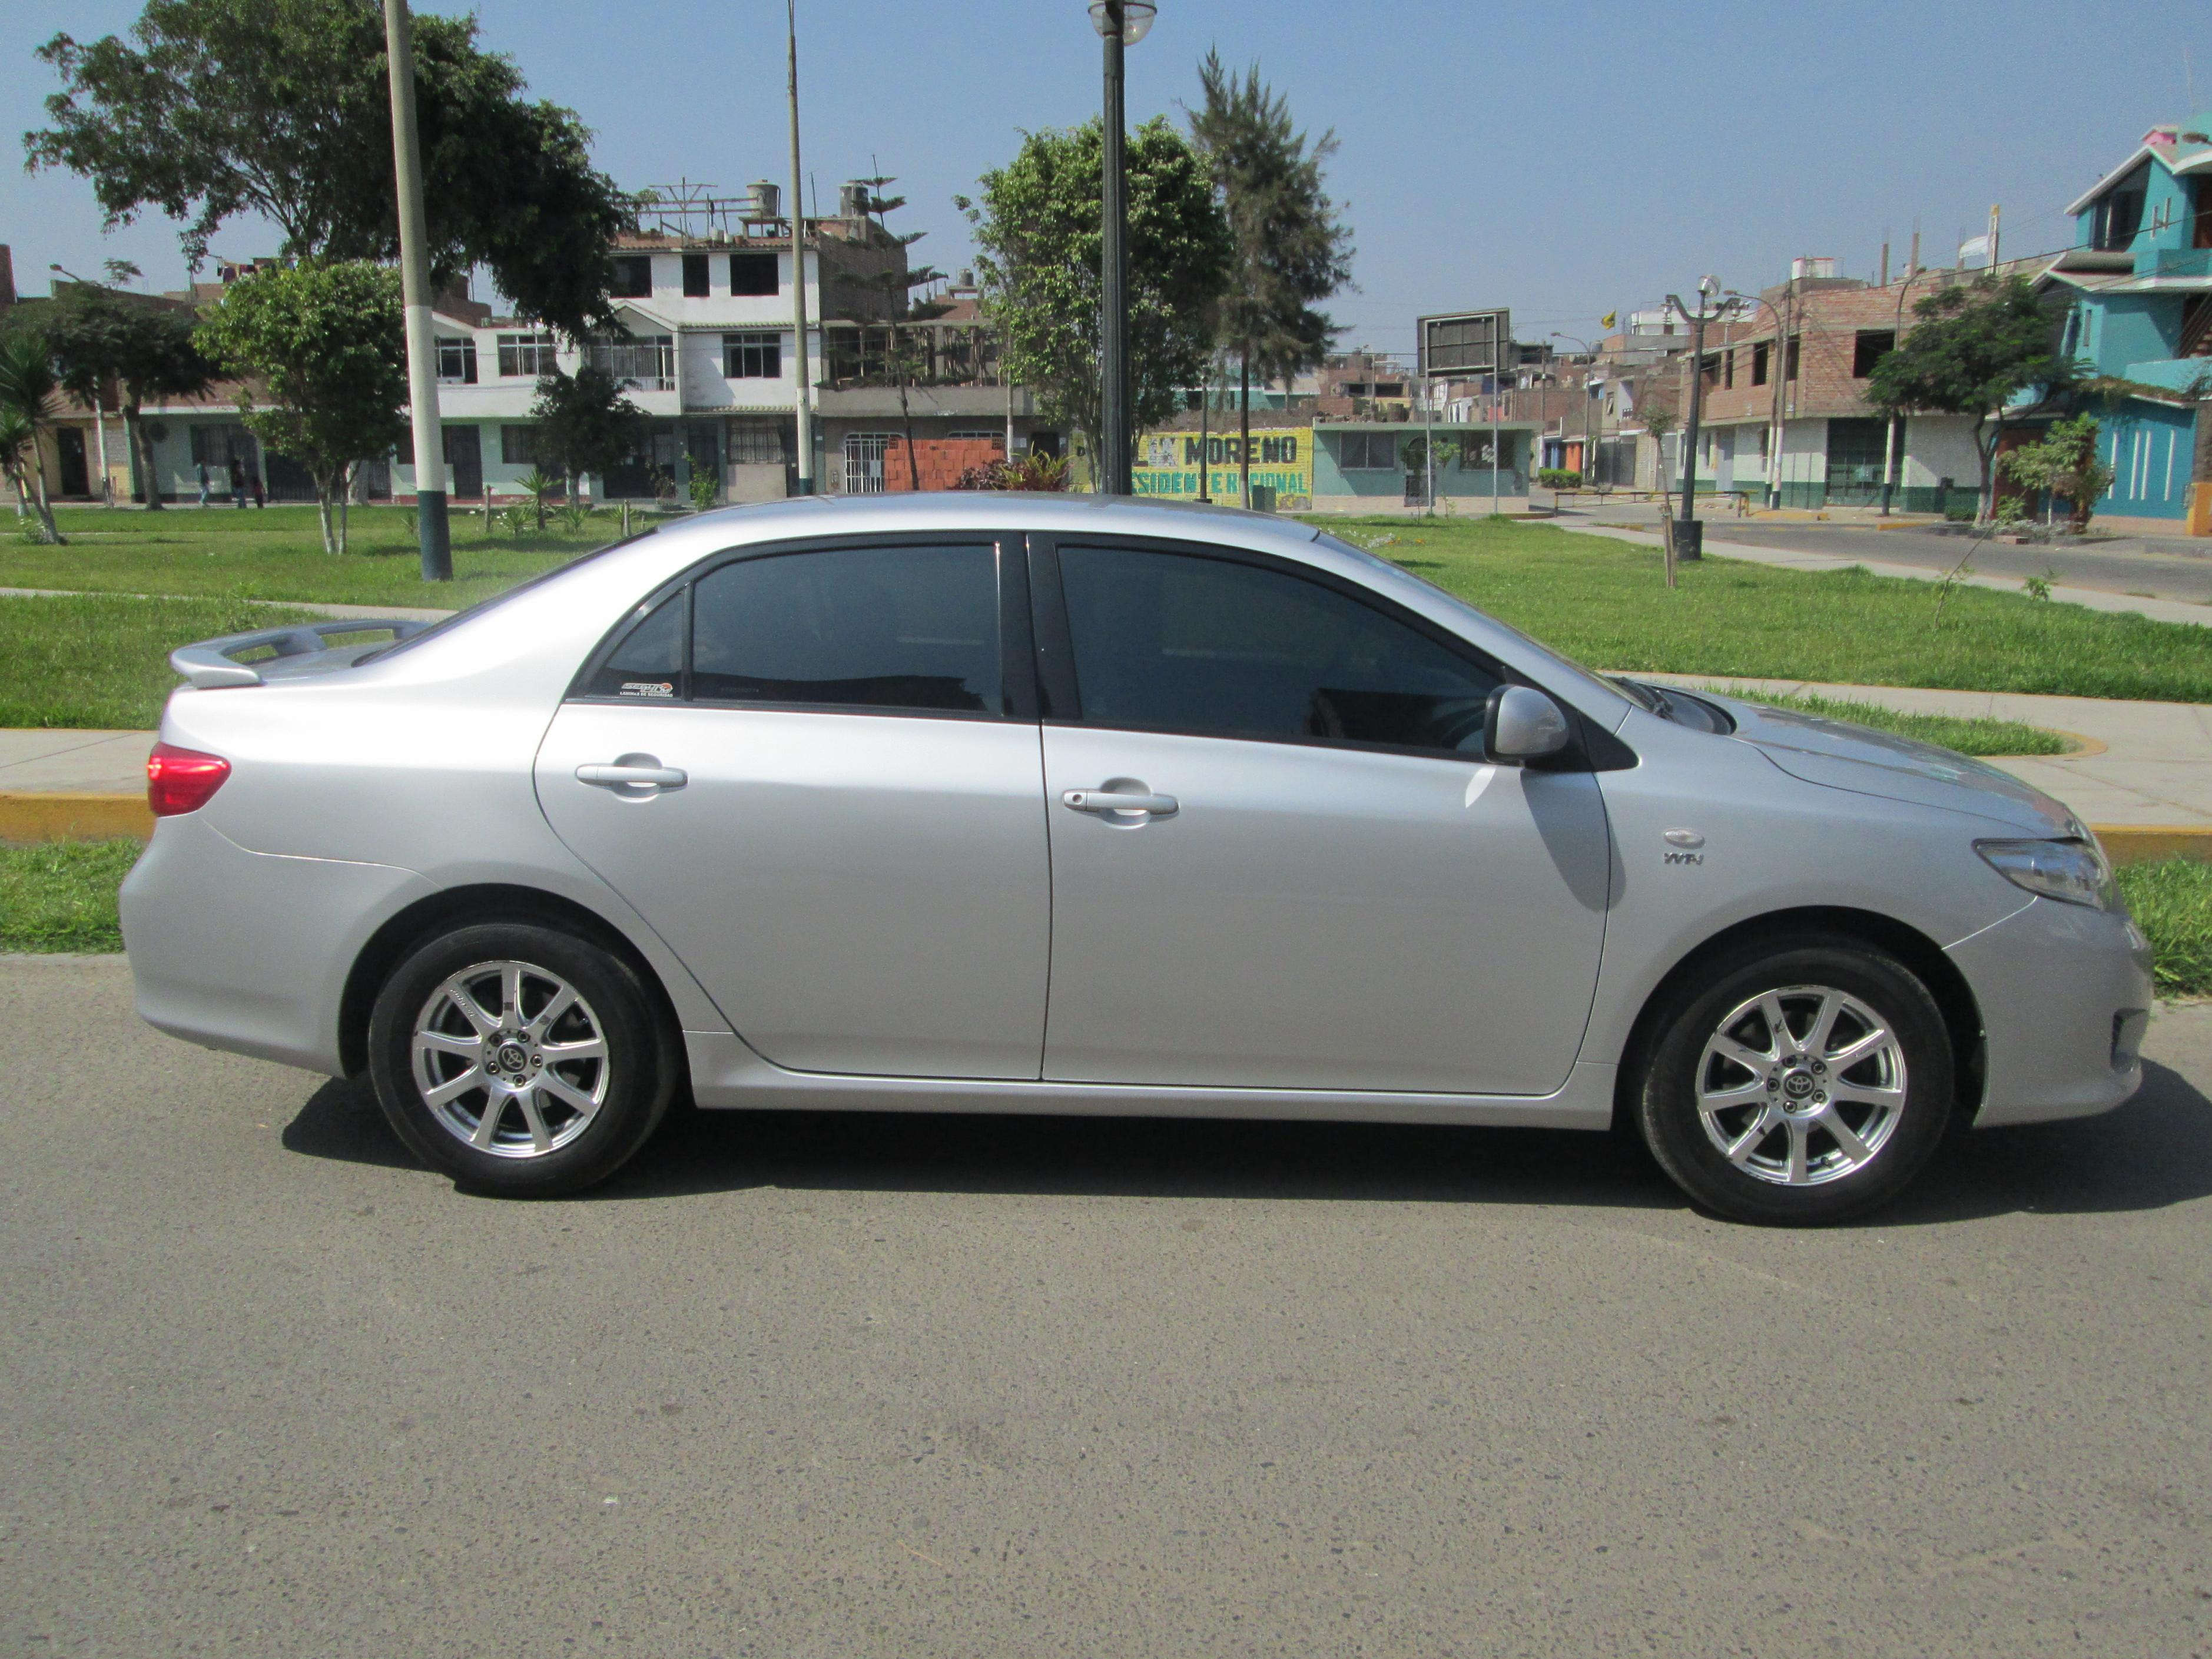 Toyota Corolla 1.3 2008 photo - 9